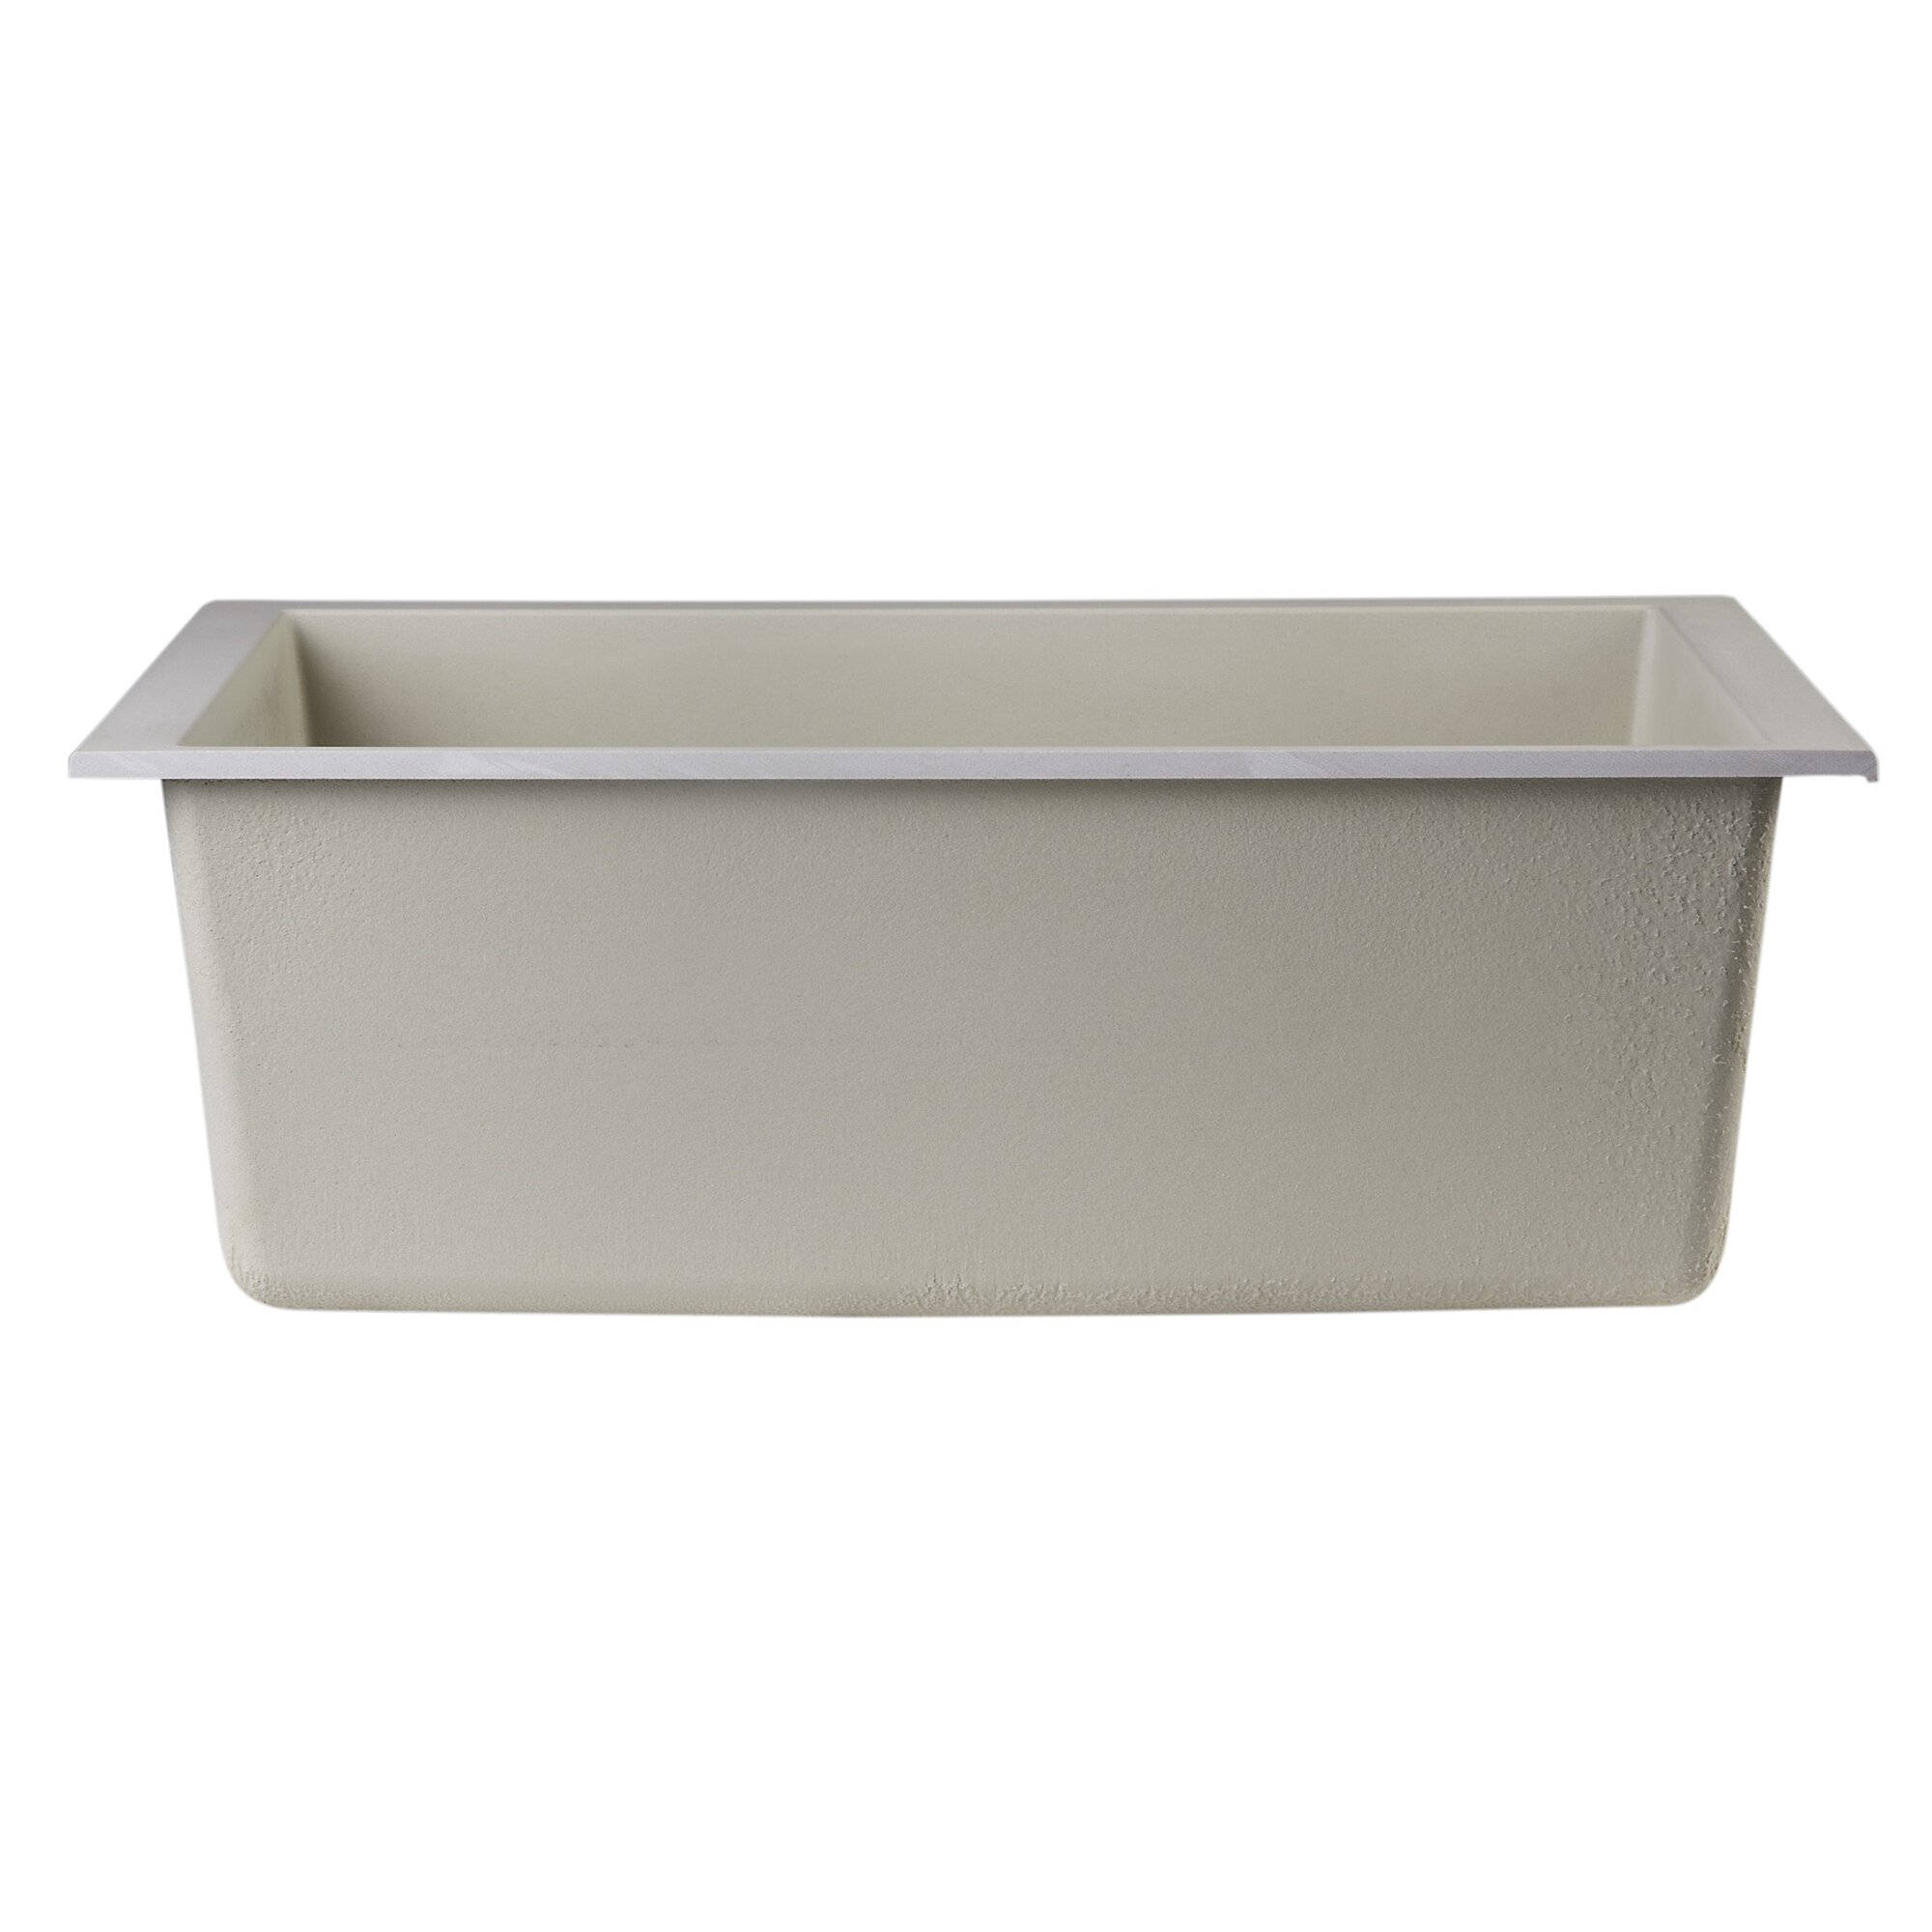 "Alfi Brand 23 63"" x 17 75"" Undermount Single Bowl Kitchen"